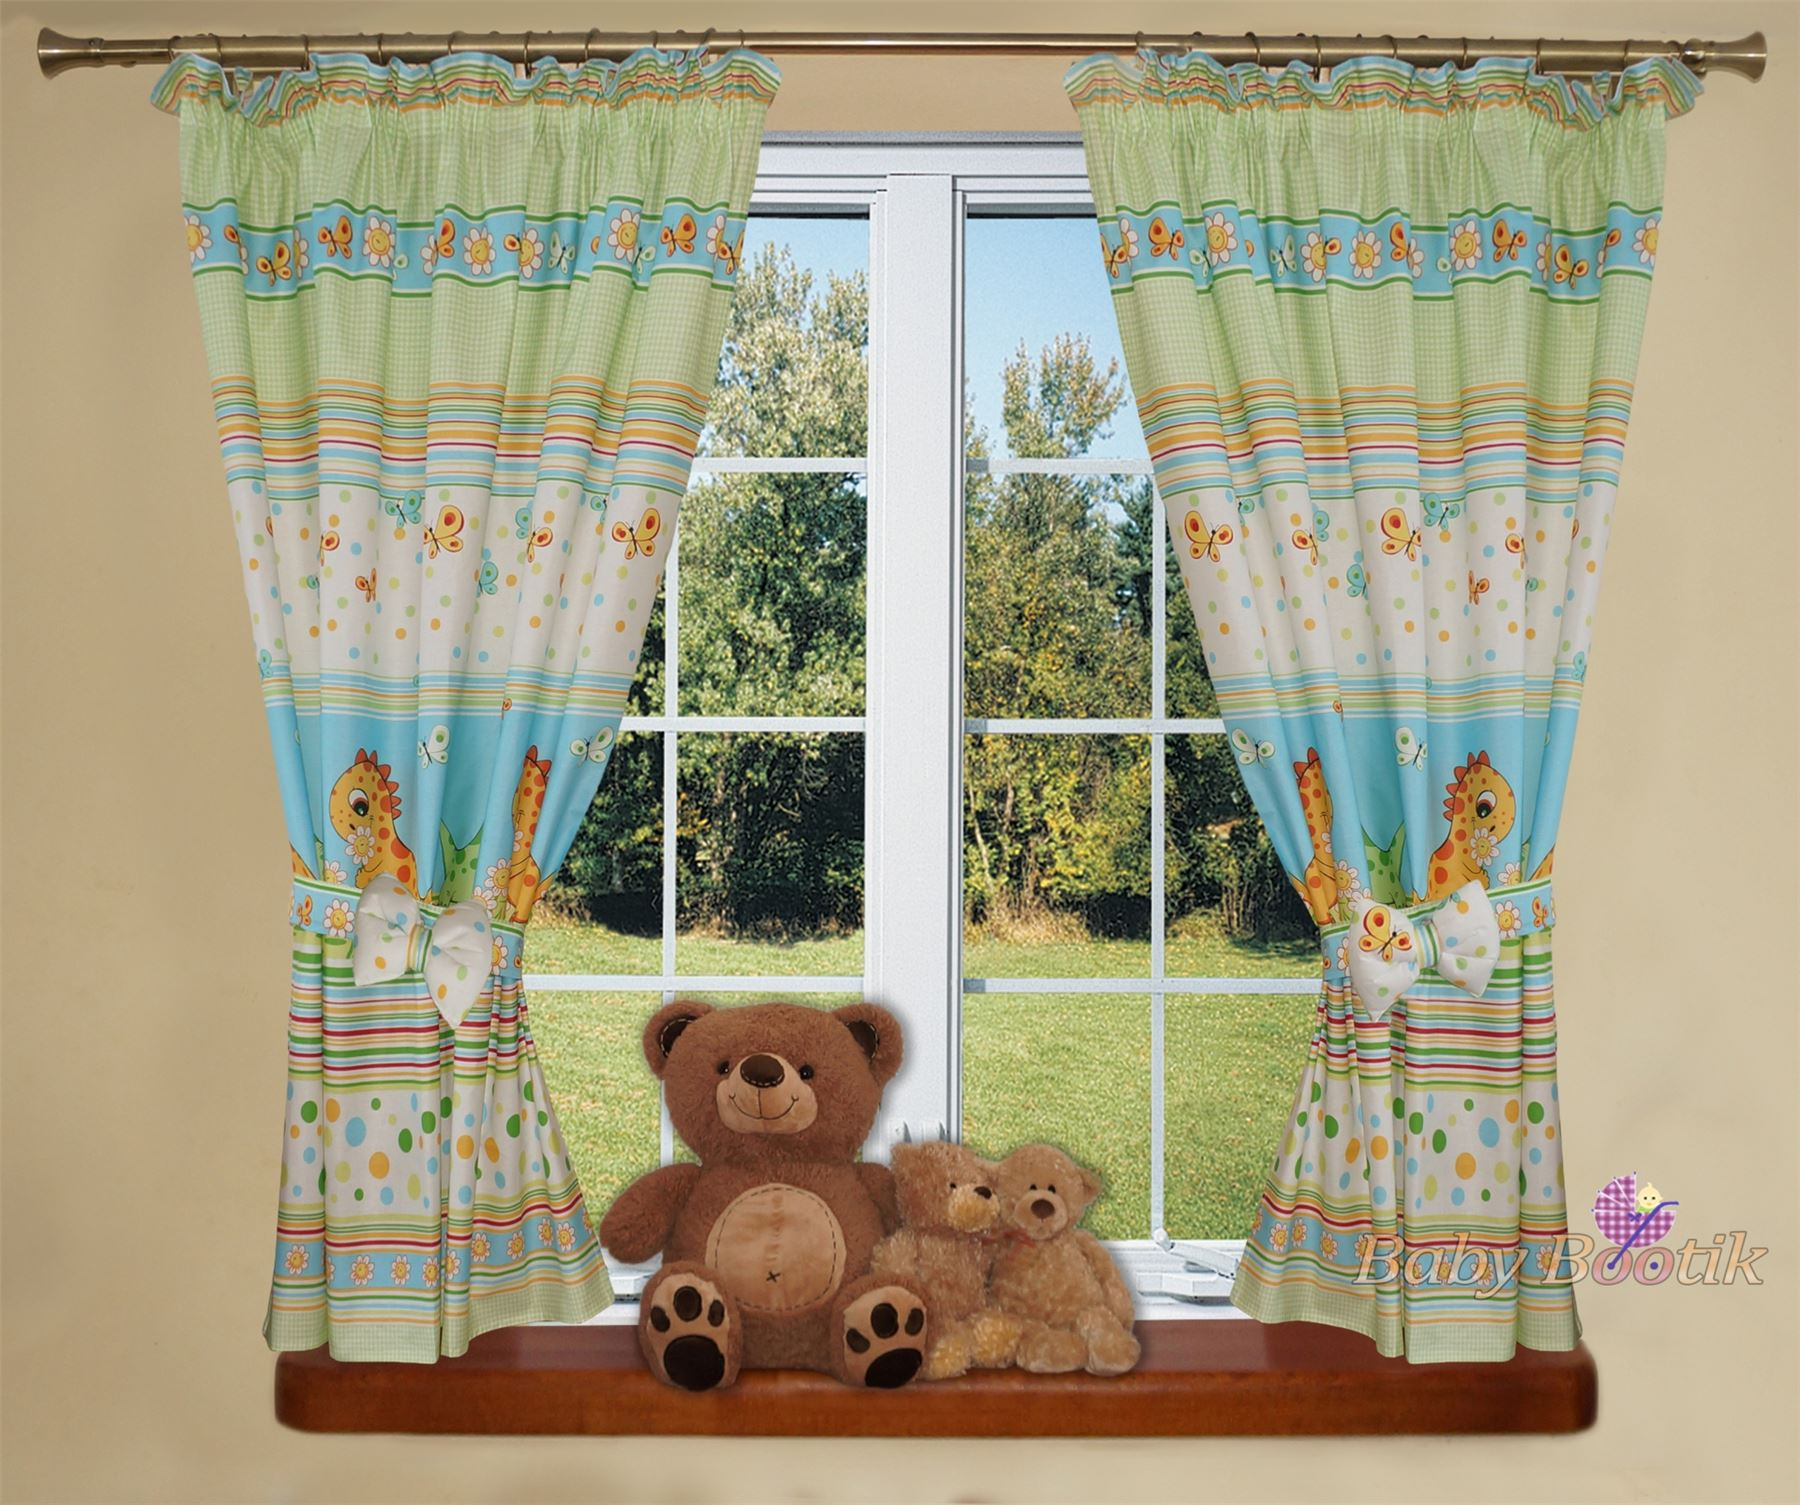 luxuri s baby zimmer fenster vorh nge in passend muster f r kinderzimmer bett ebay. Black Bedroom Furniture Sets. Home Design Ideas